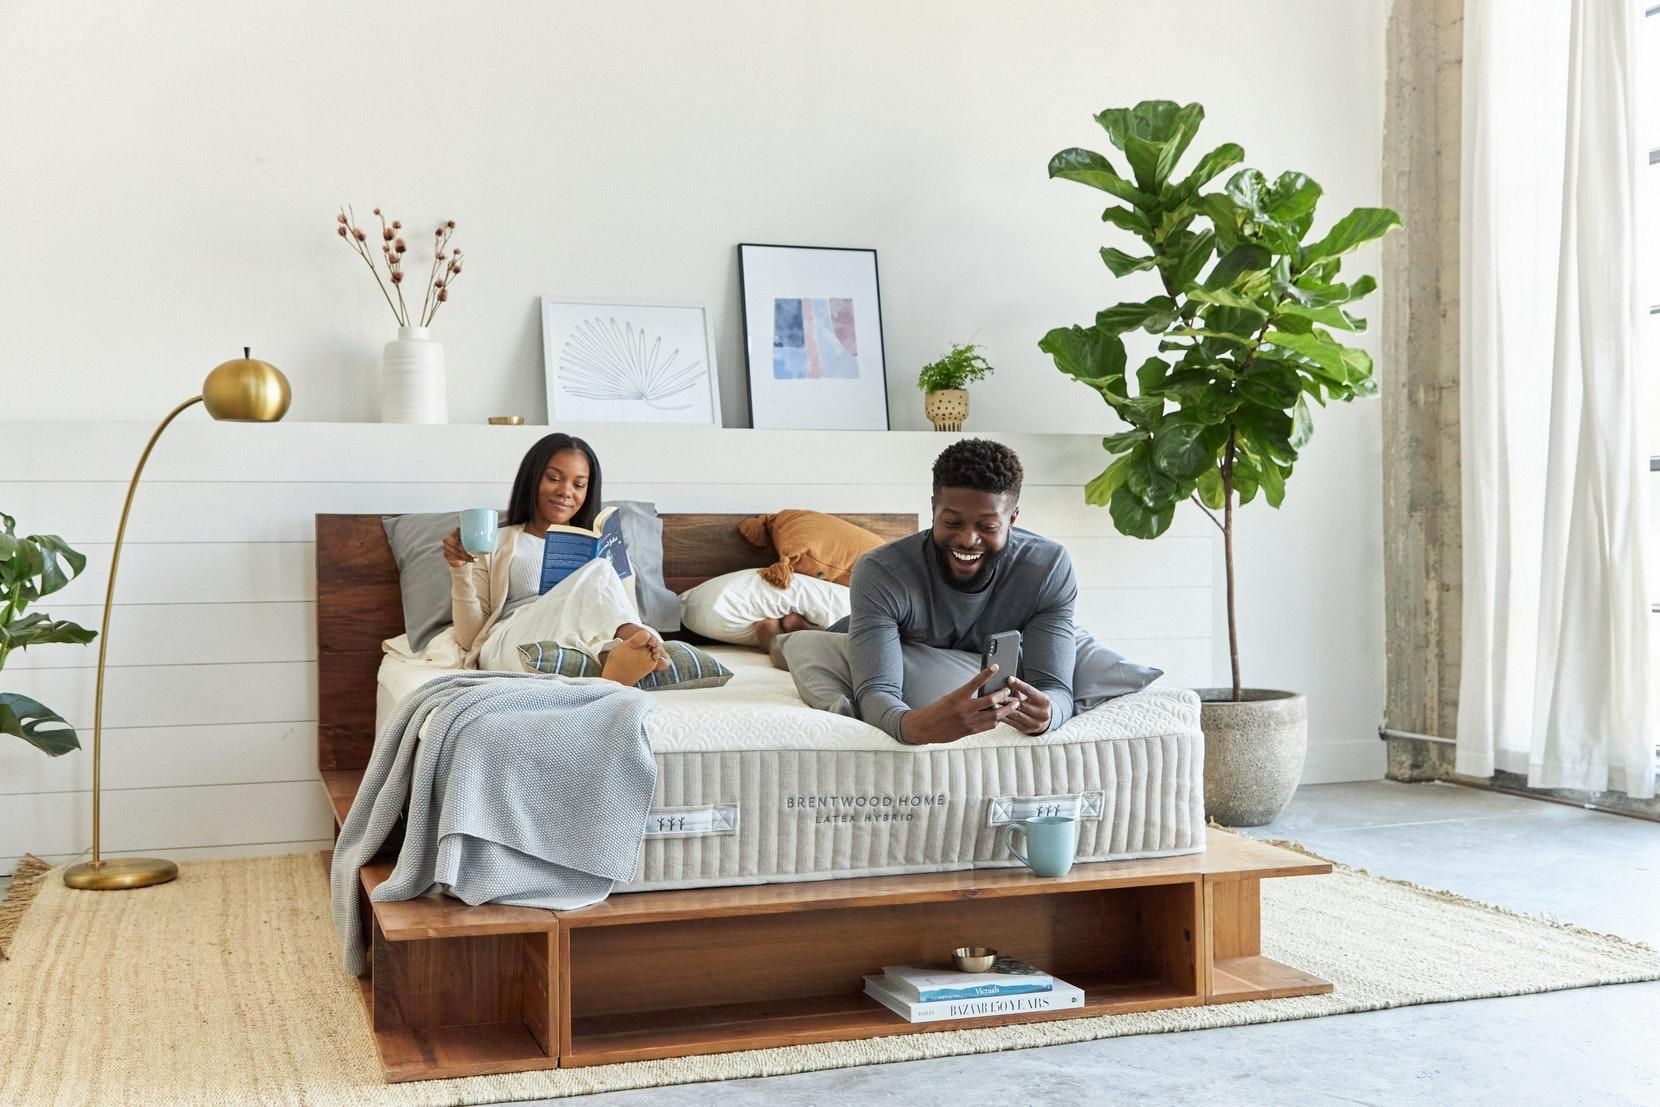 Hybrid Mattress by Brentwood Home 2